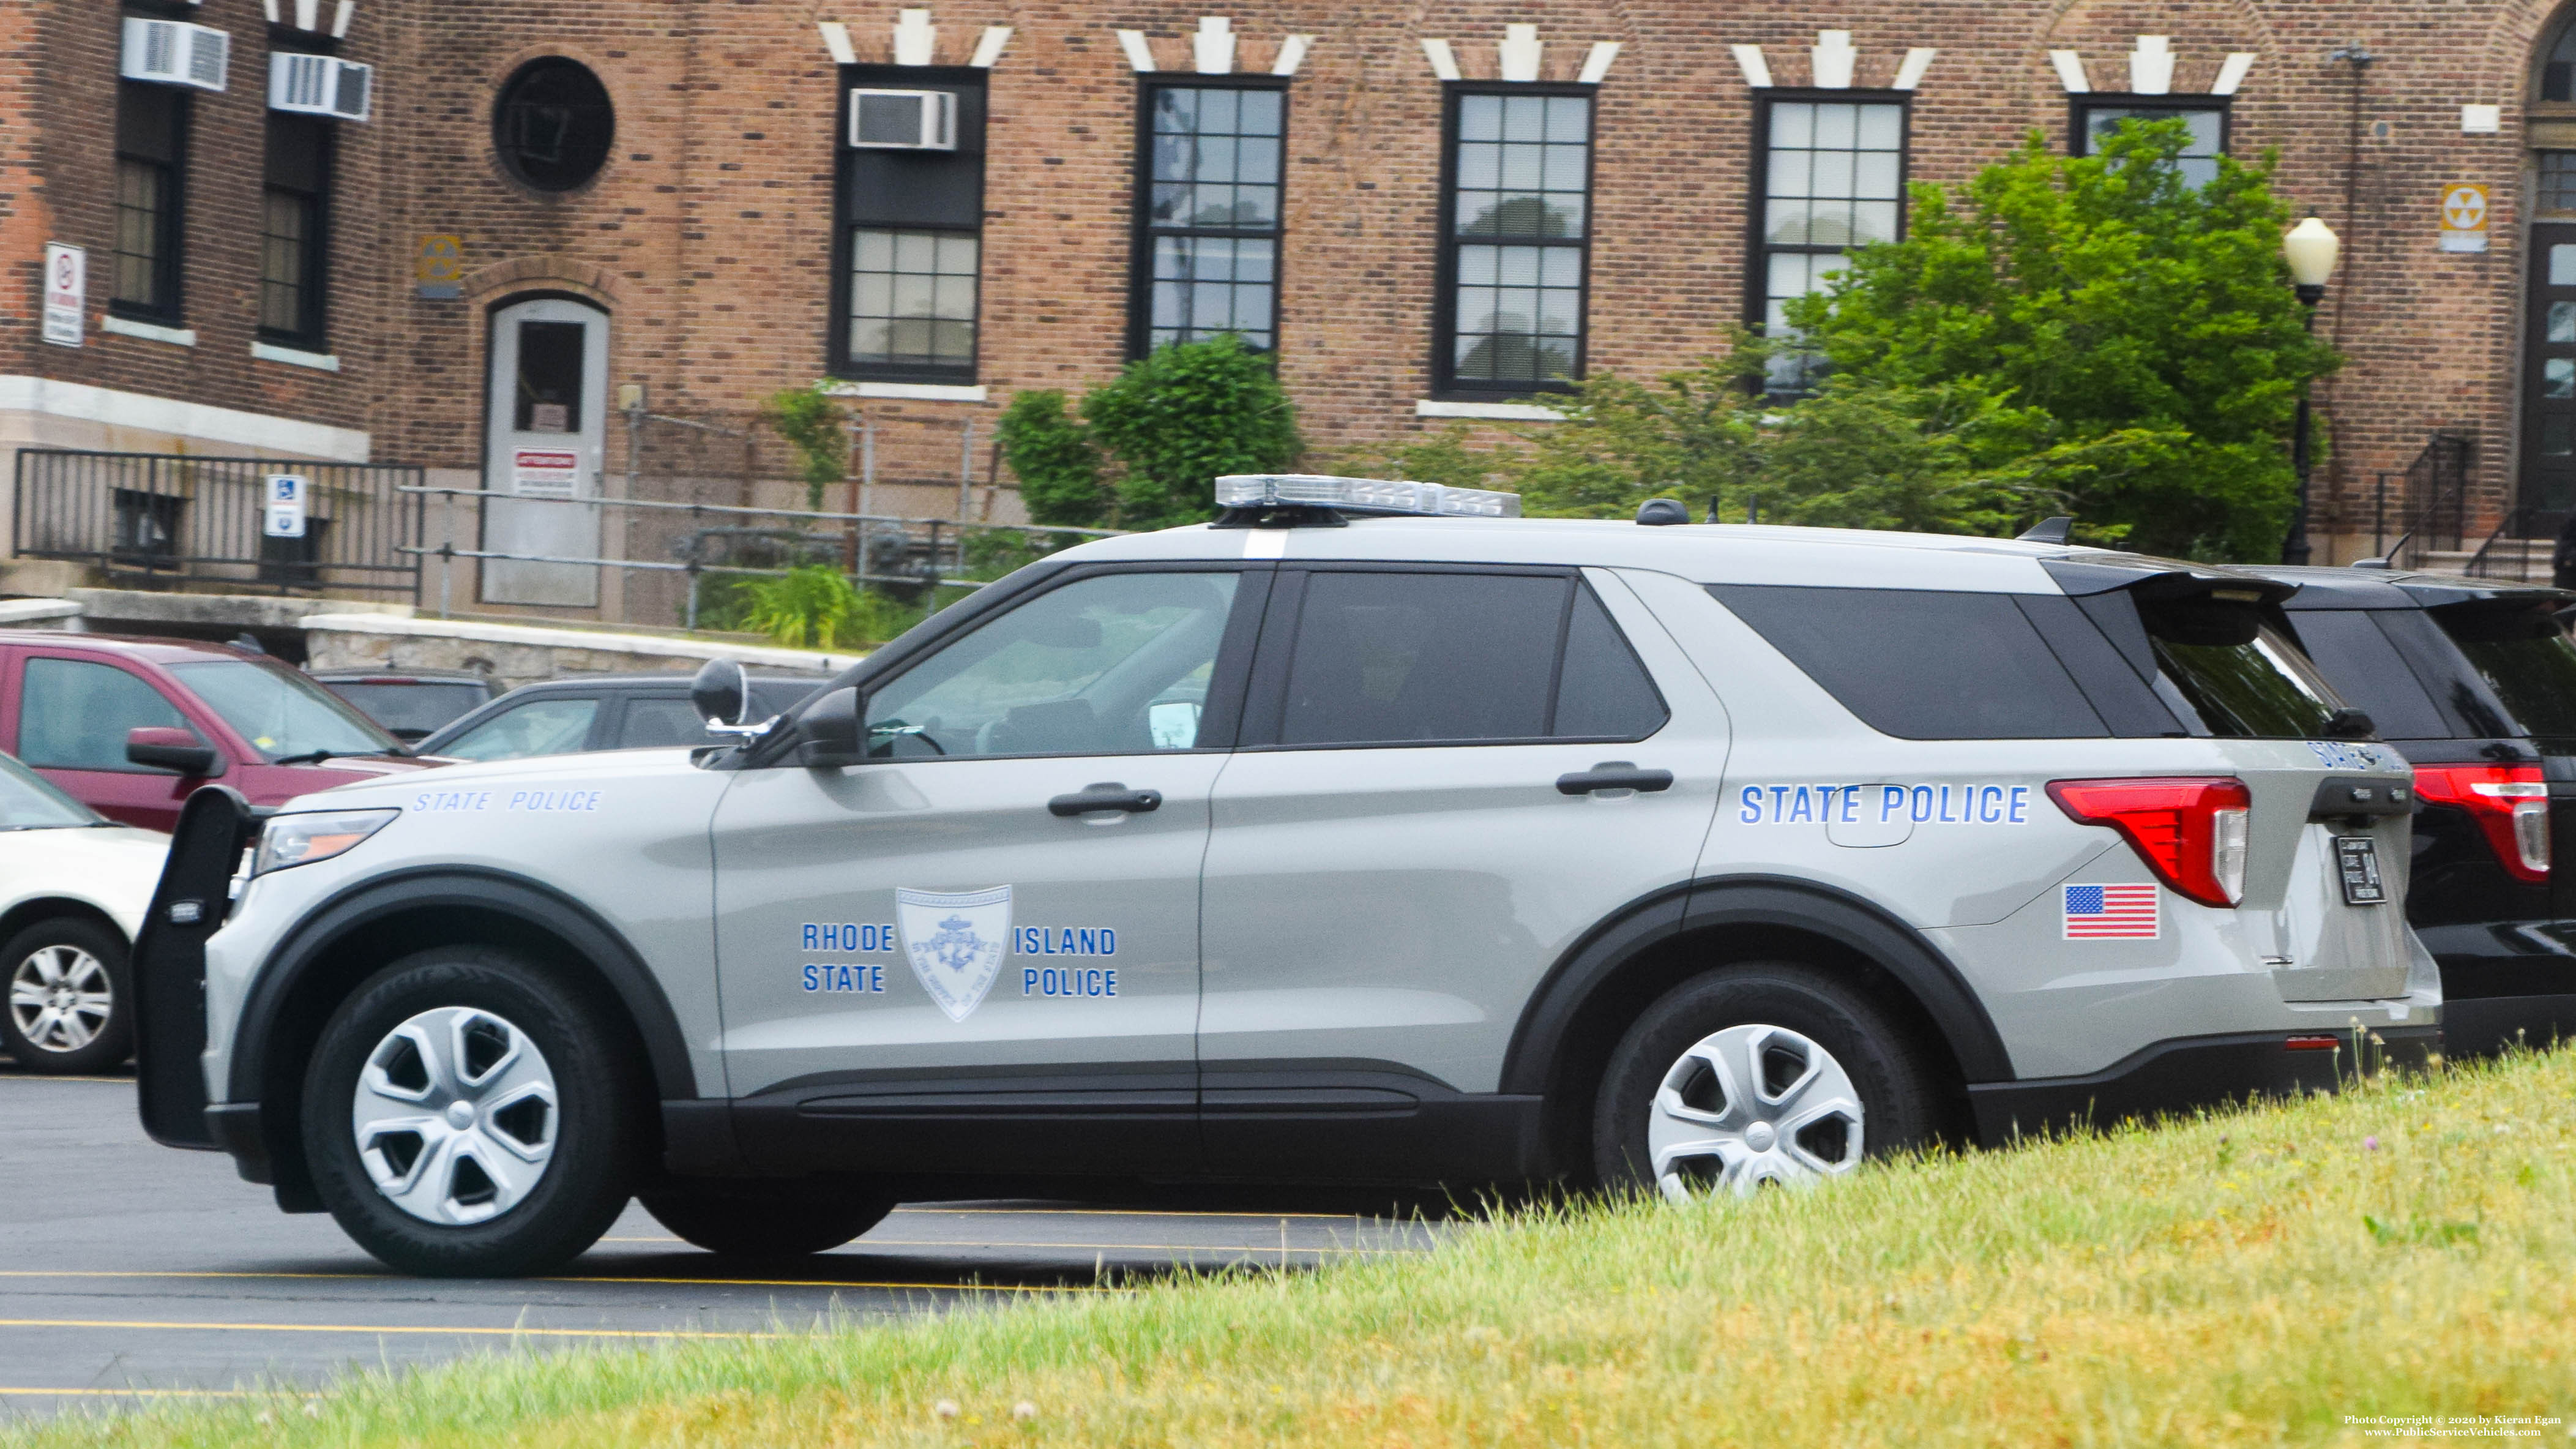 A photo  of Rhode Island State Police             Cruiser 84, a 2020 Ford Police Interceptor Utility             taken by Kieran Egan